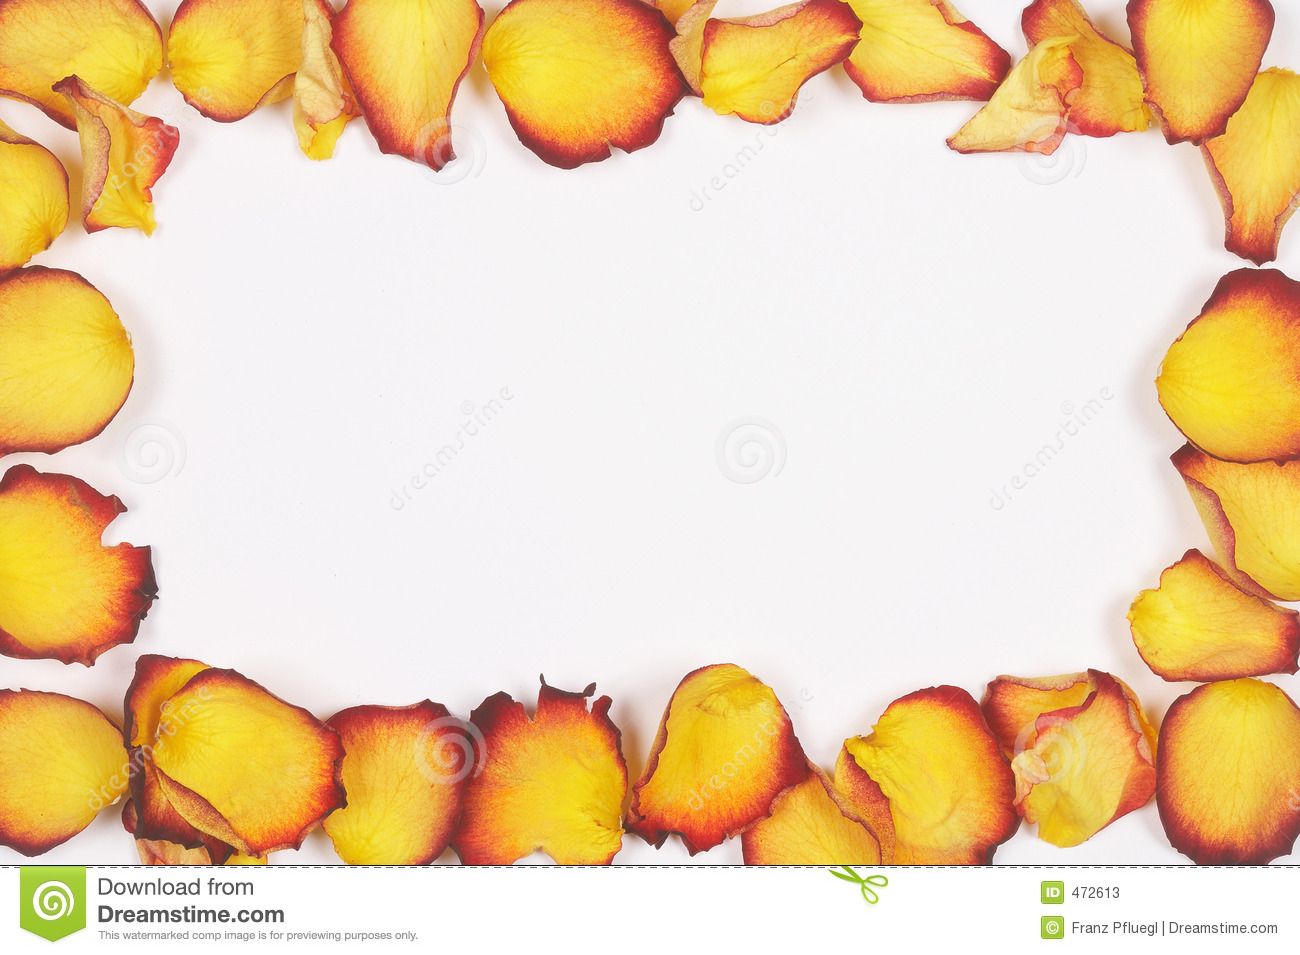 Download Yellow-red Rose Petals - Gelb-rote Rosenbl䴴er Stock Illustration - Illustration of liaison, affair: 472613